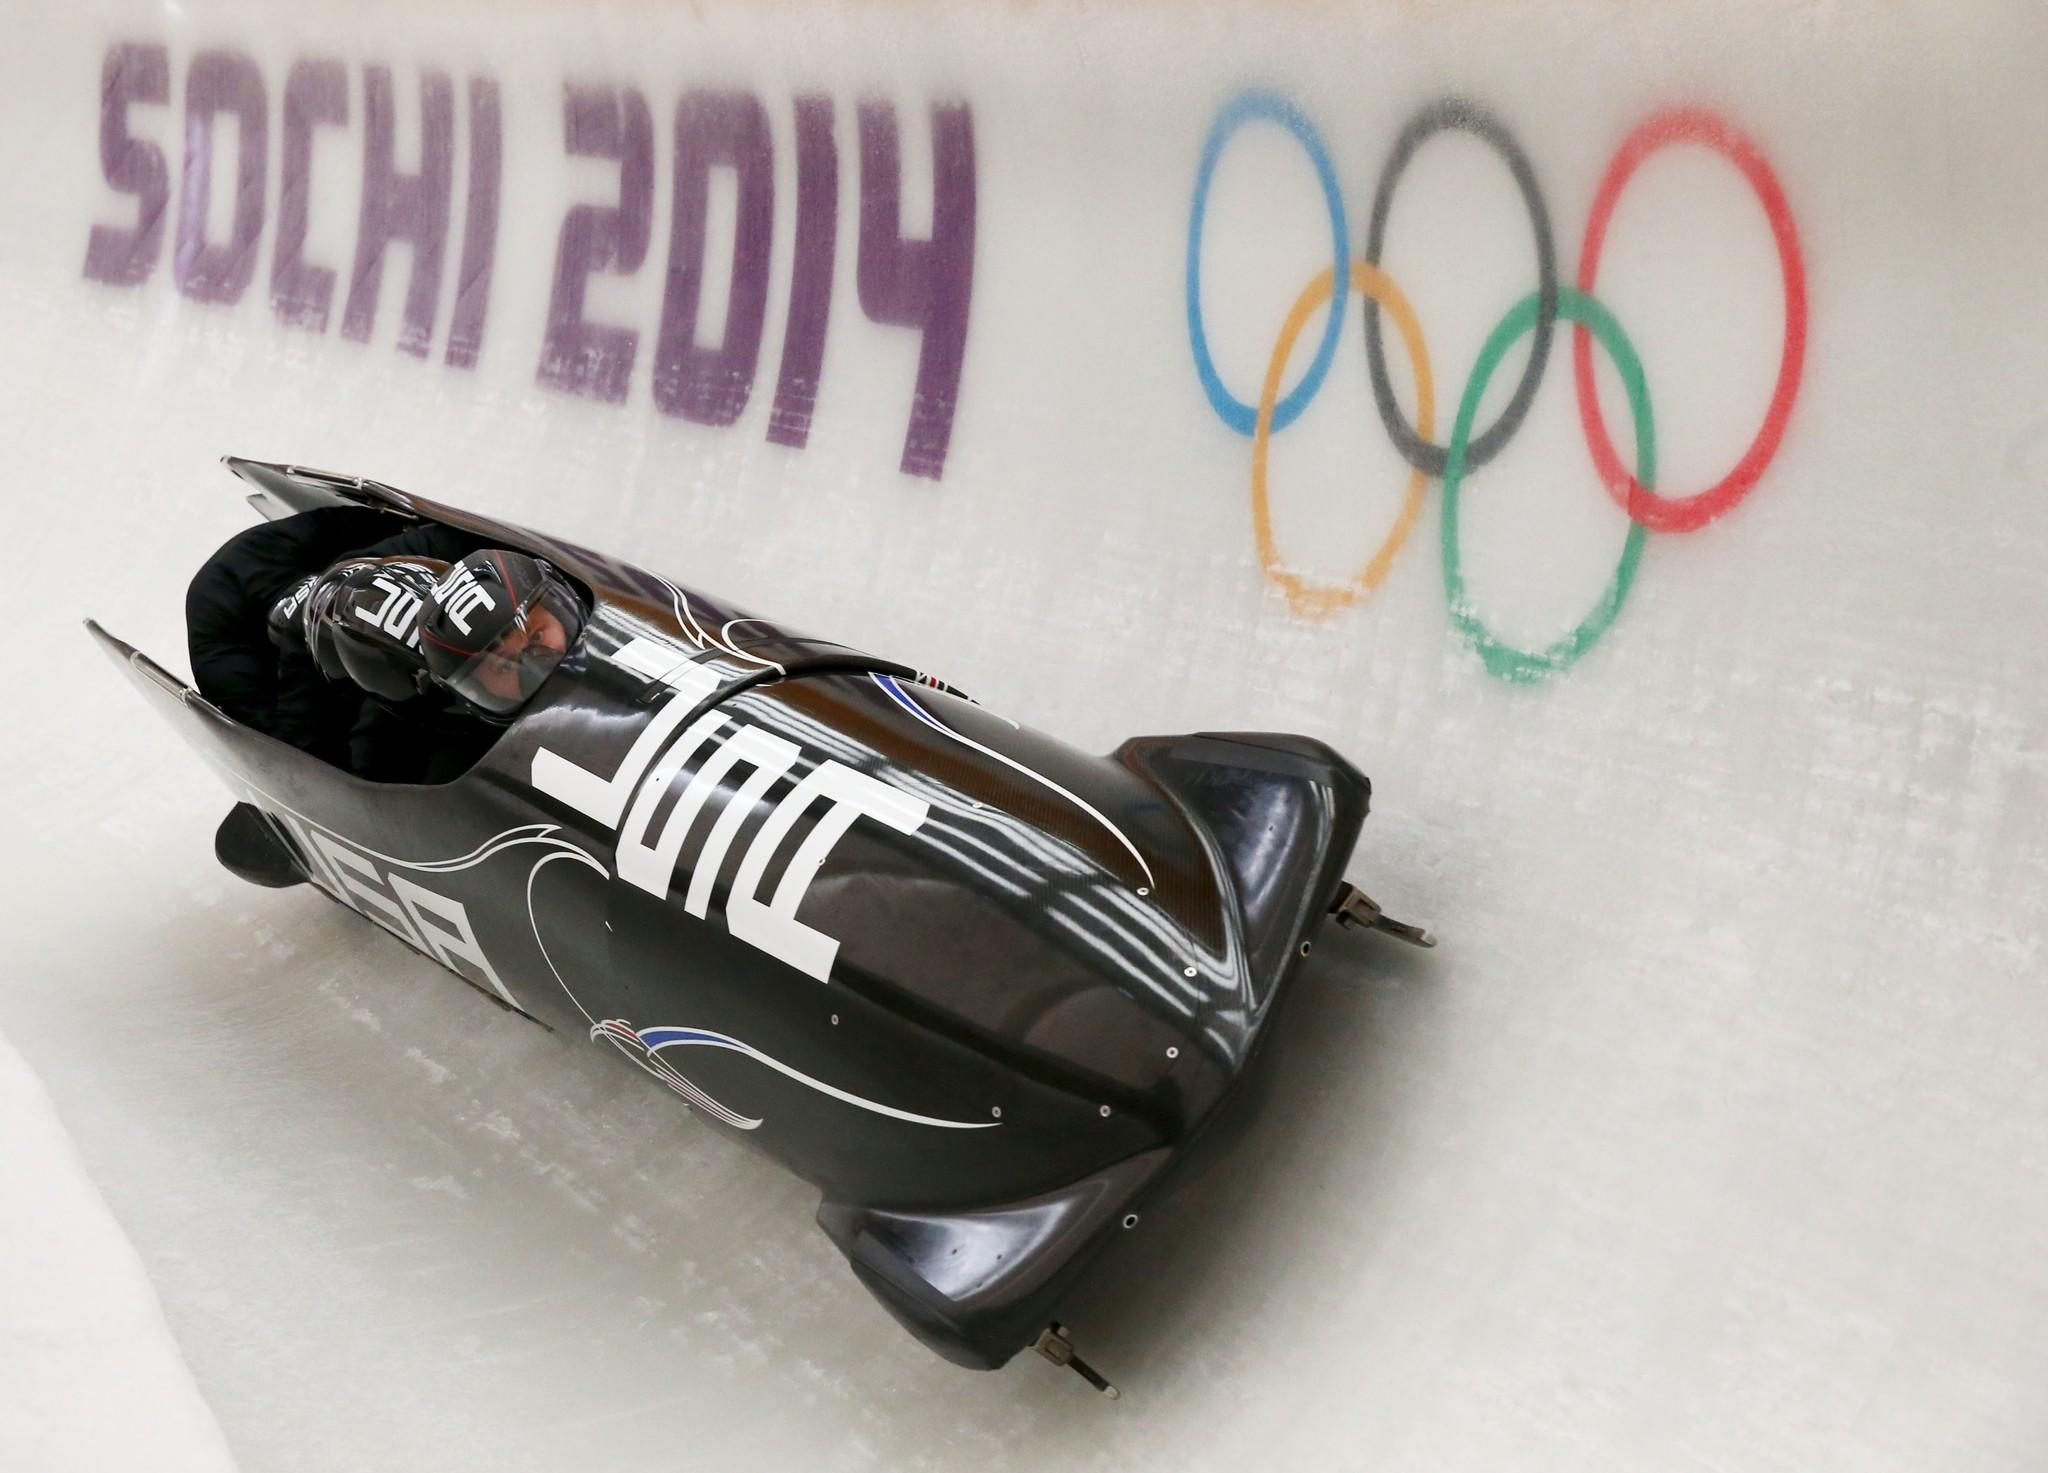 Steven Holcomb of United States pilots a run during a four-man bobsled practice session.